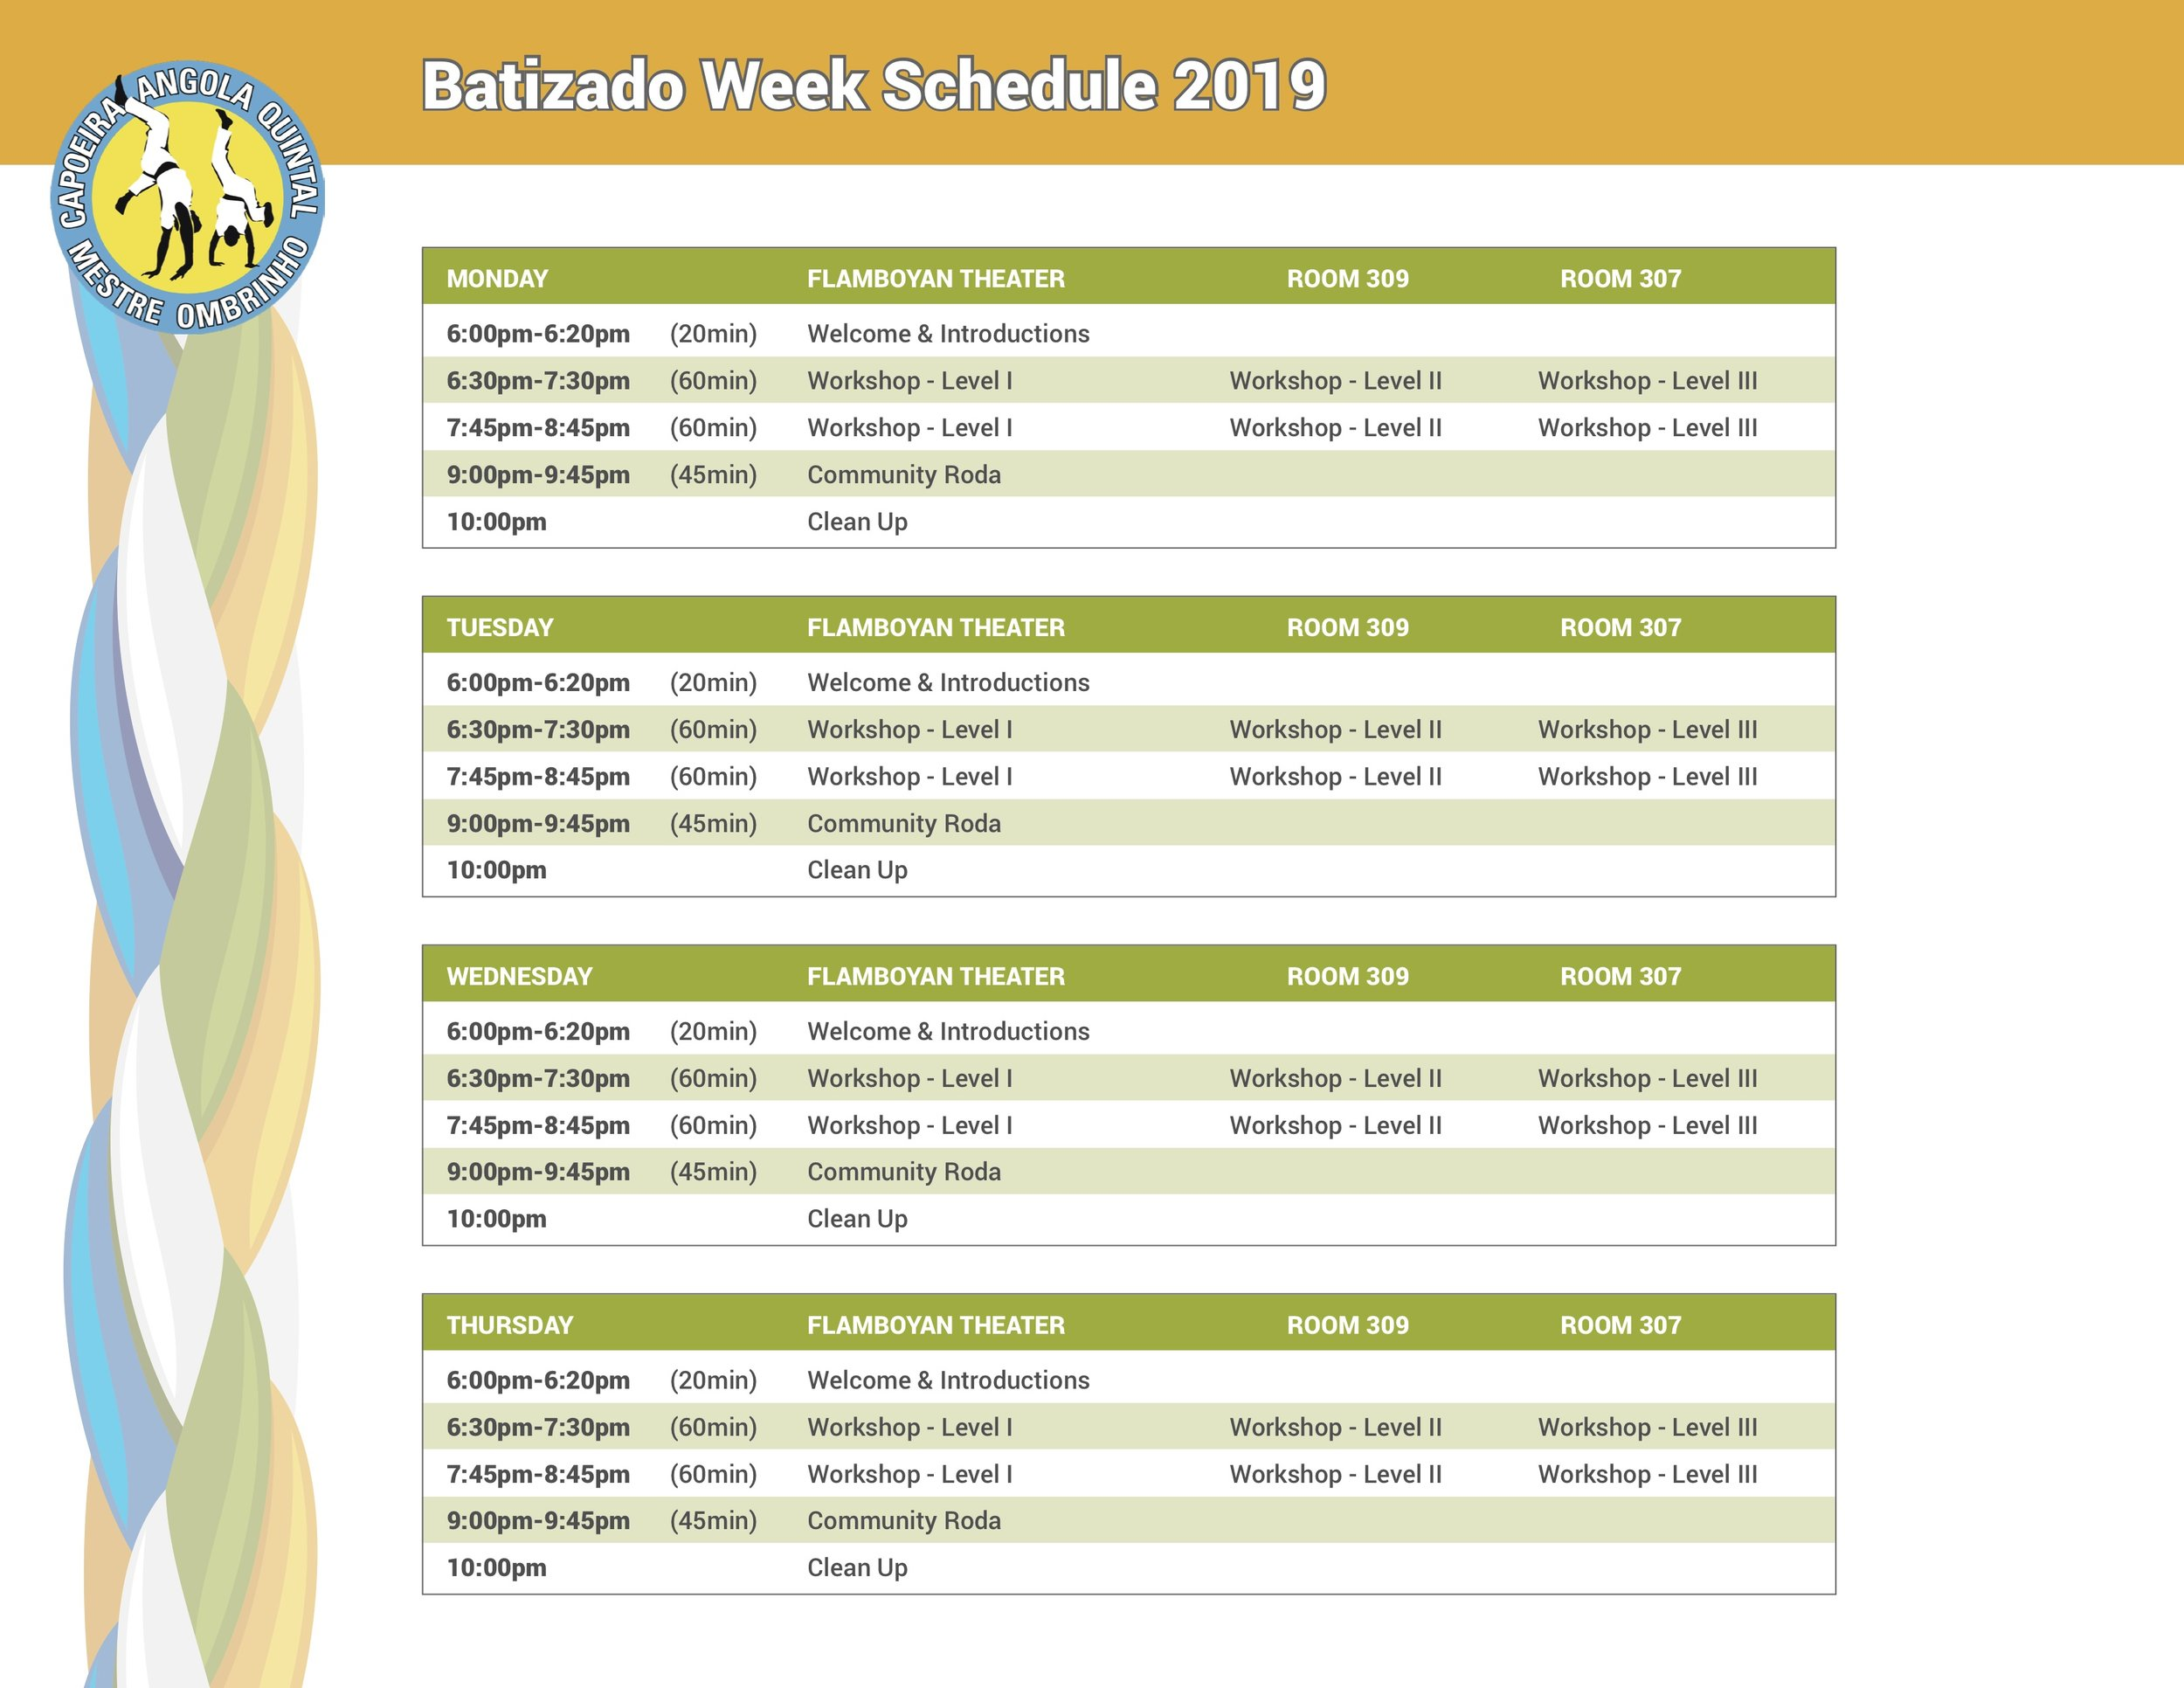 CAQ_Batizado_Schedule_2019_Weekdays.jpg